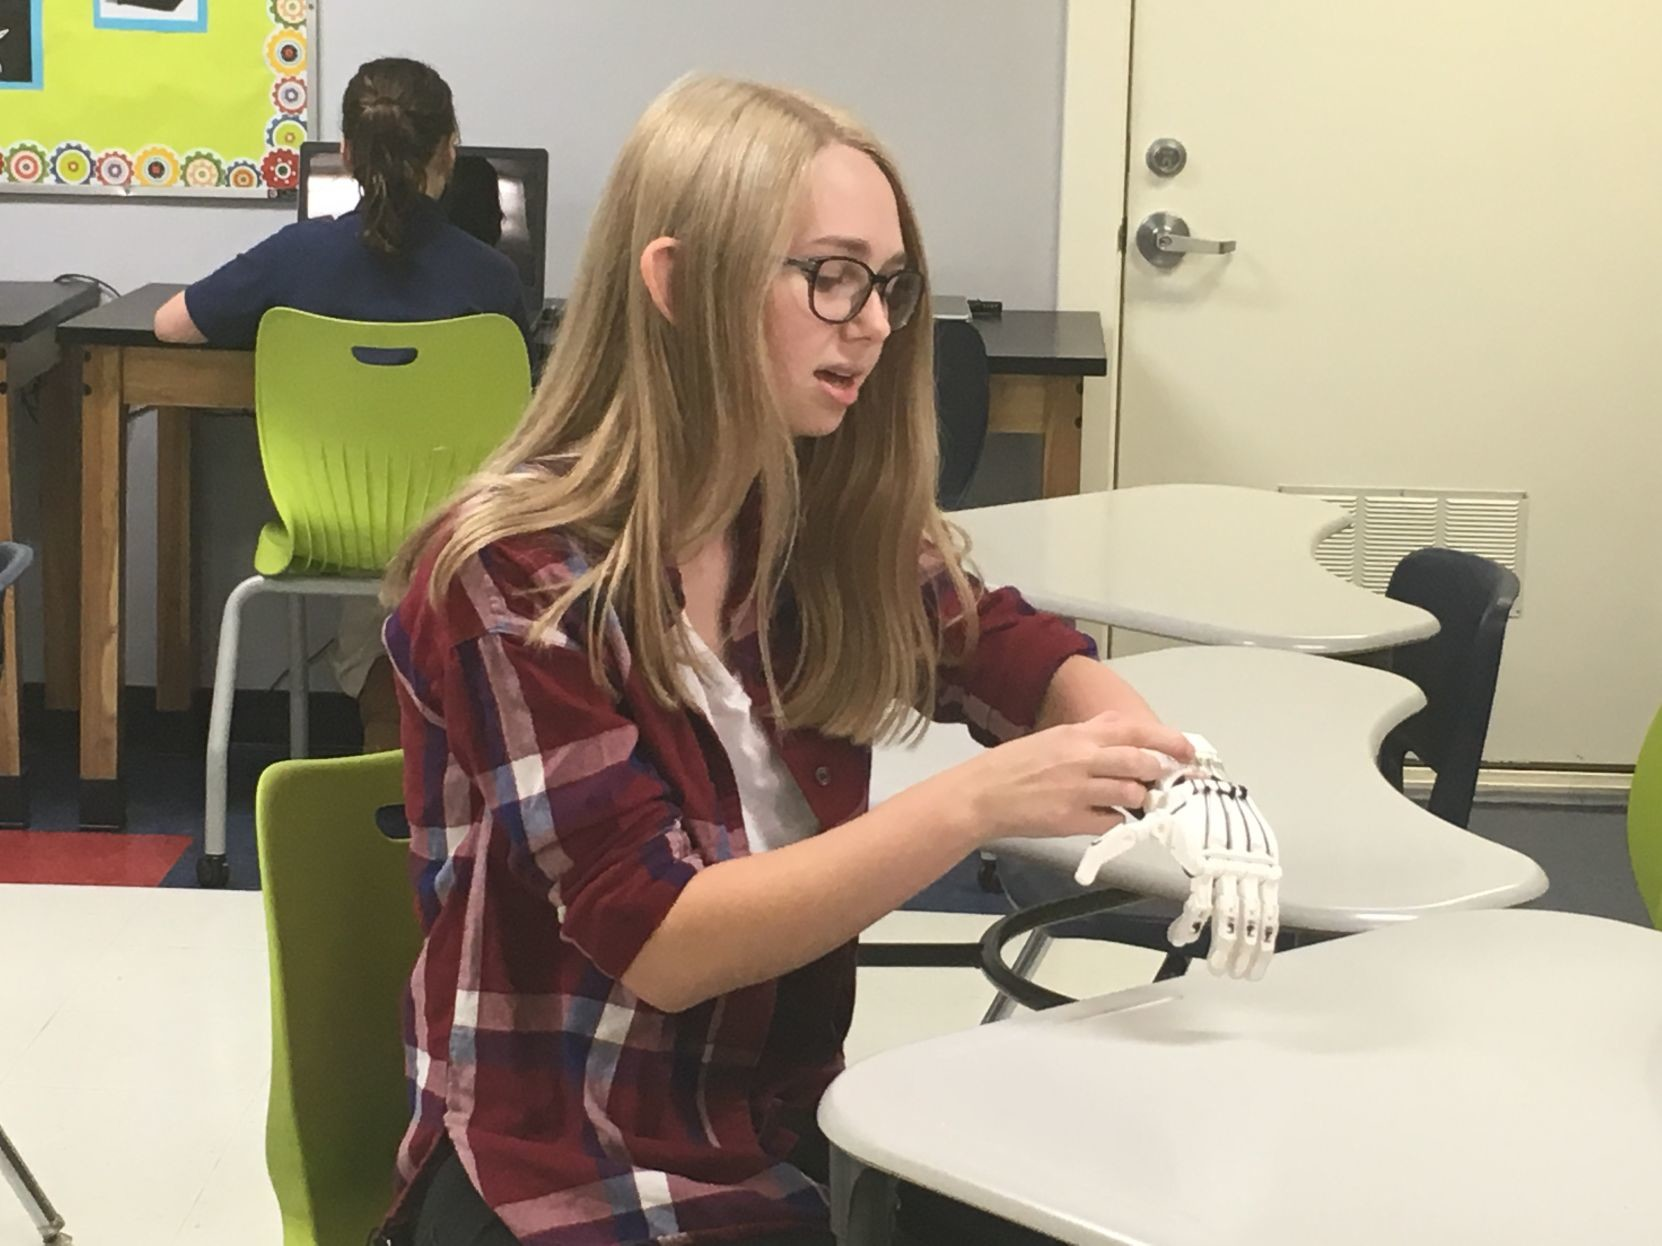 Paris Varnier, a senior at Summit Christian Academy, trying on her prosthetic hand.